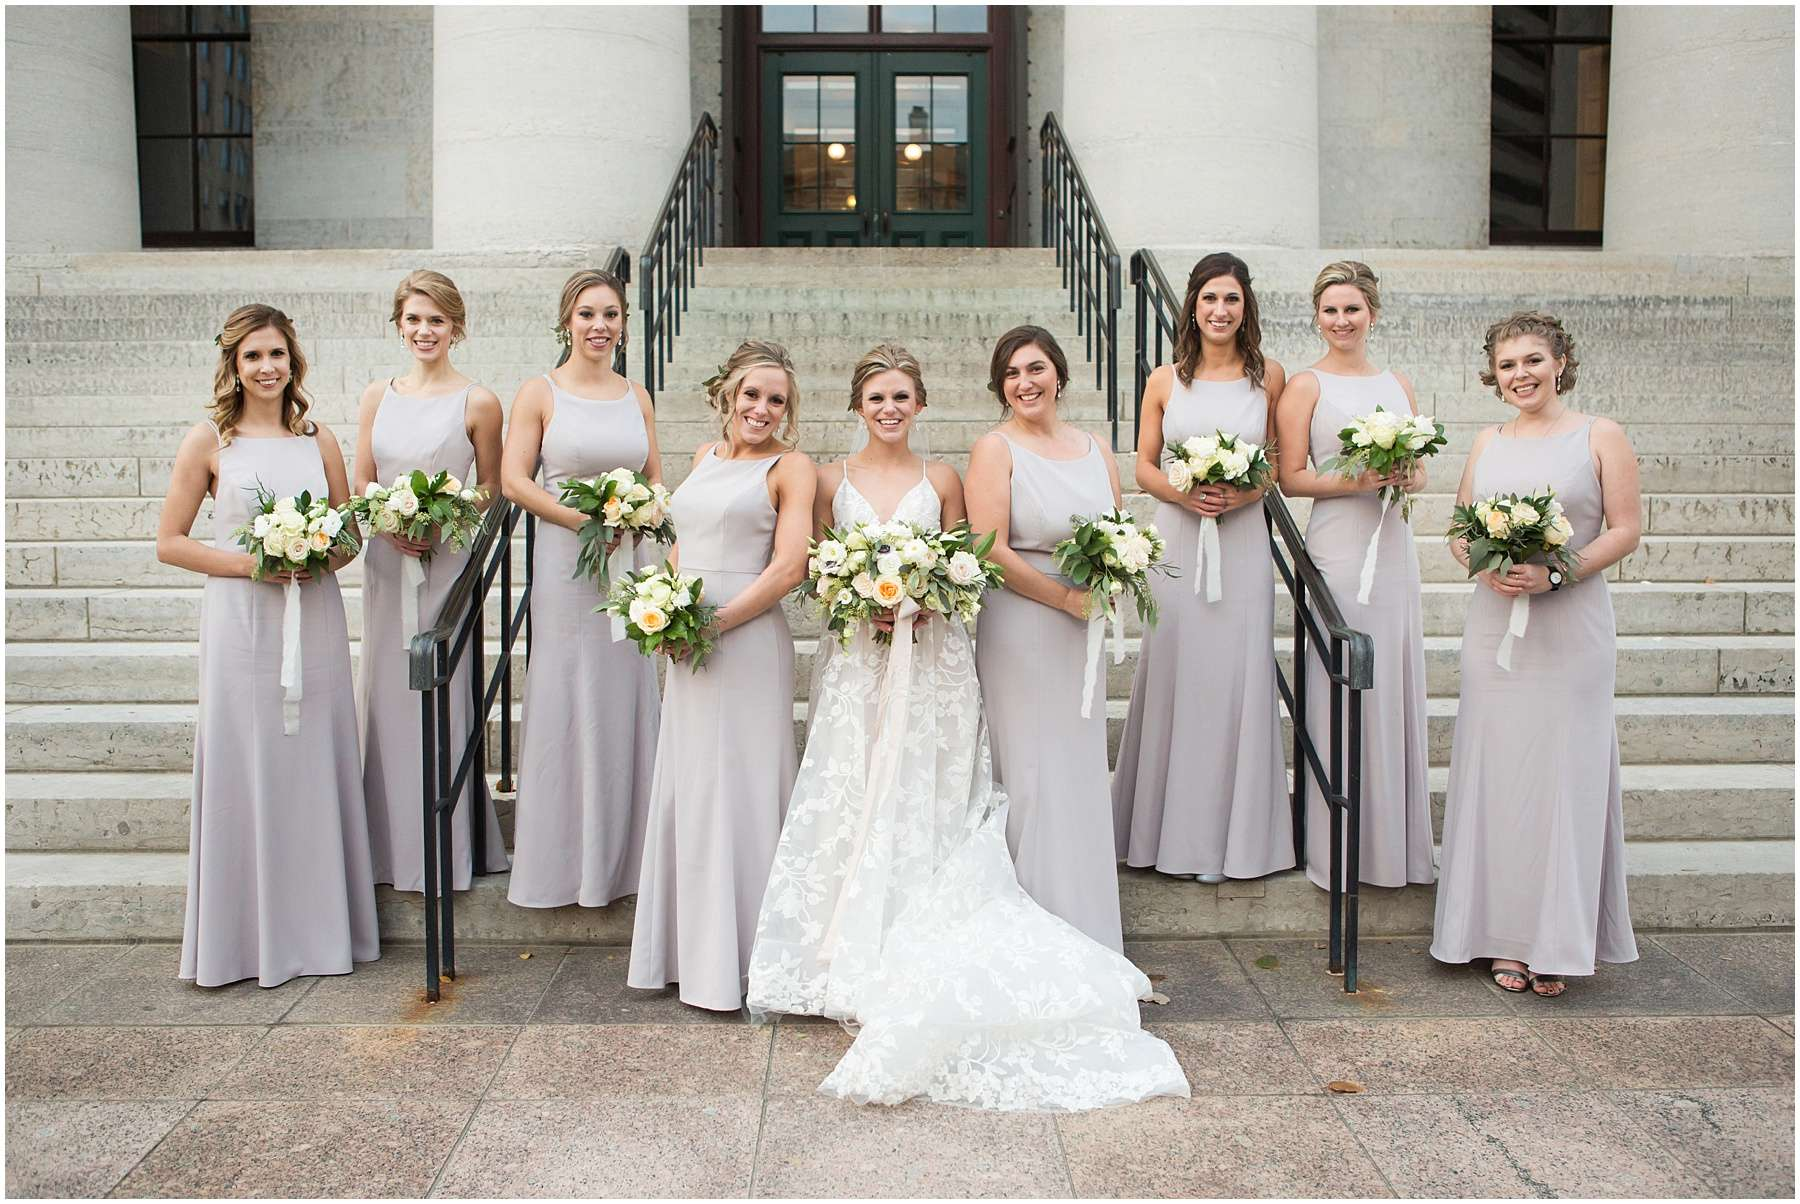 Wedding at the Ohio Statehouse | Columbus Ohio Weddings 160